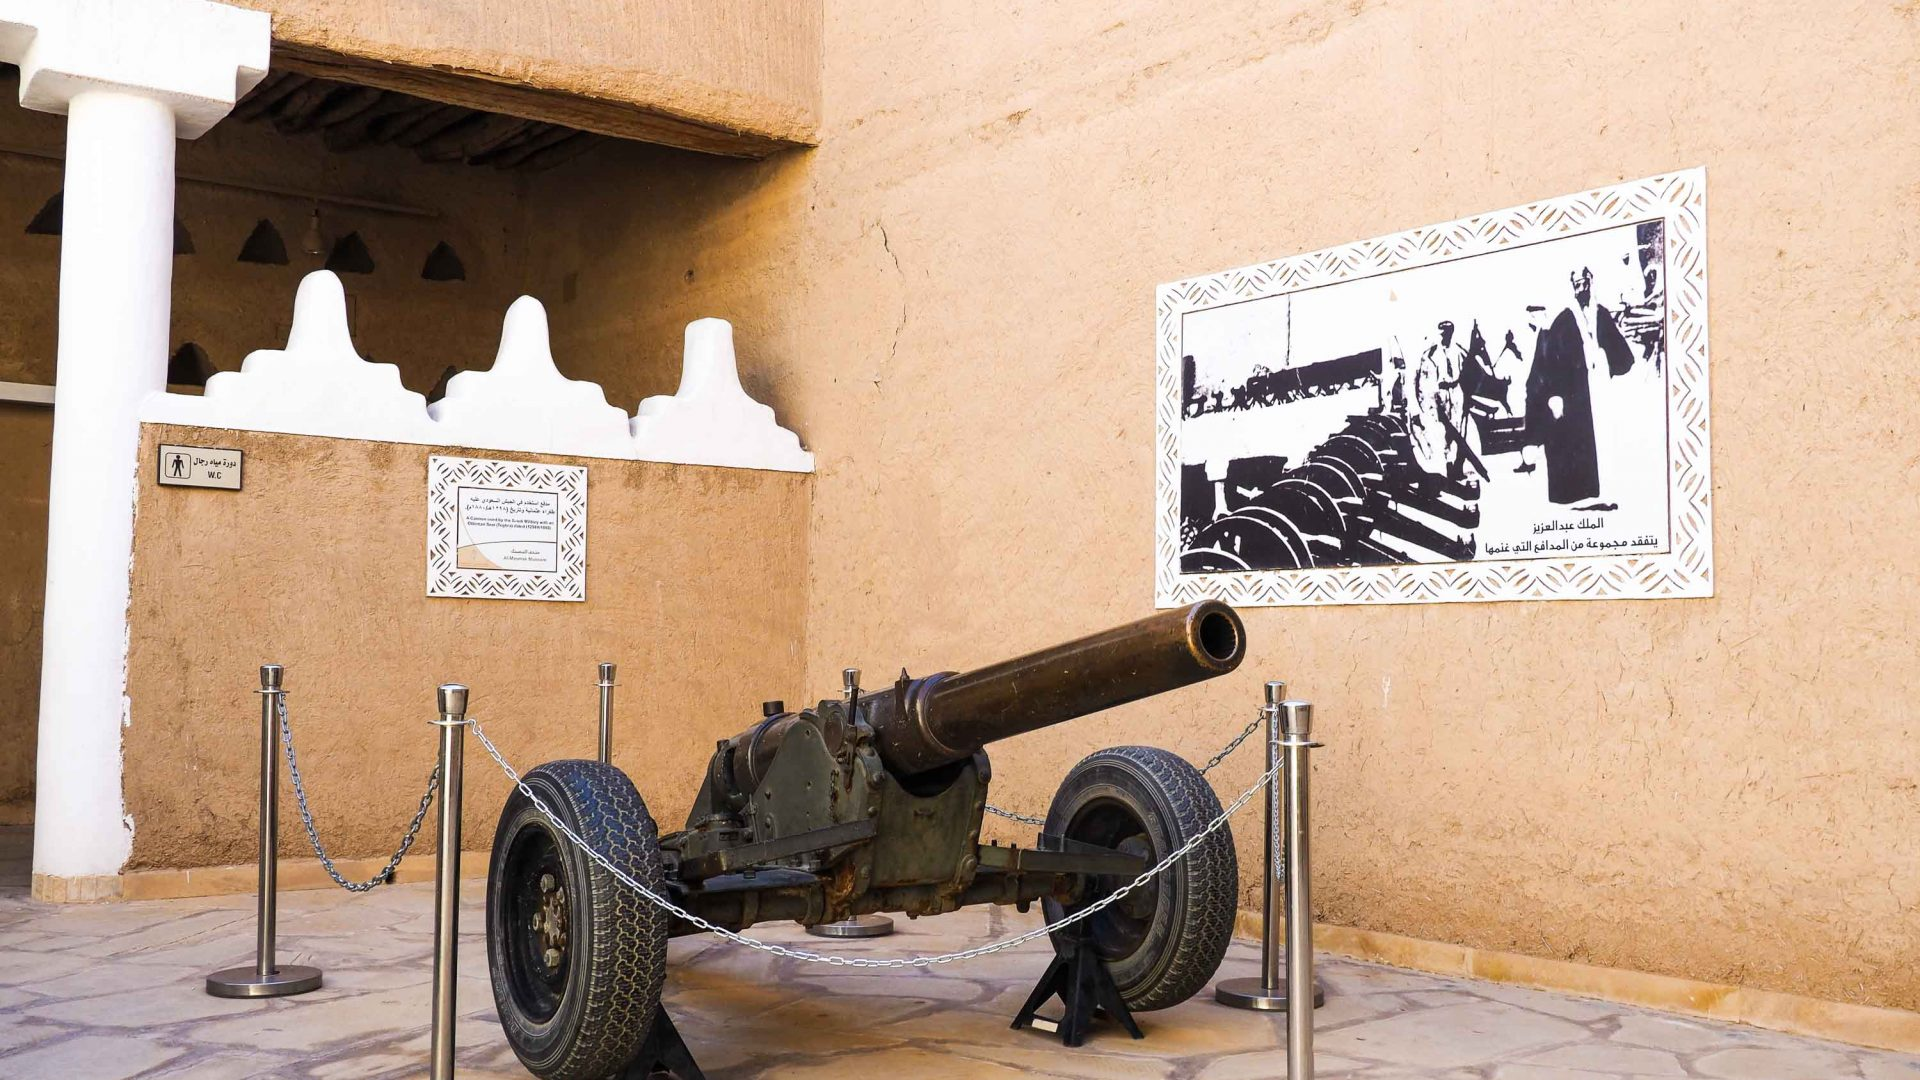 Riyadh's Masmak Fort is full of historical artefacts.